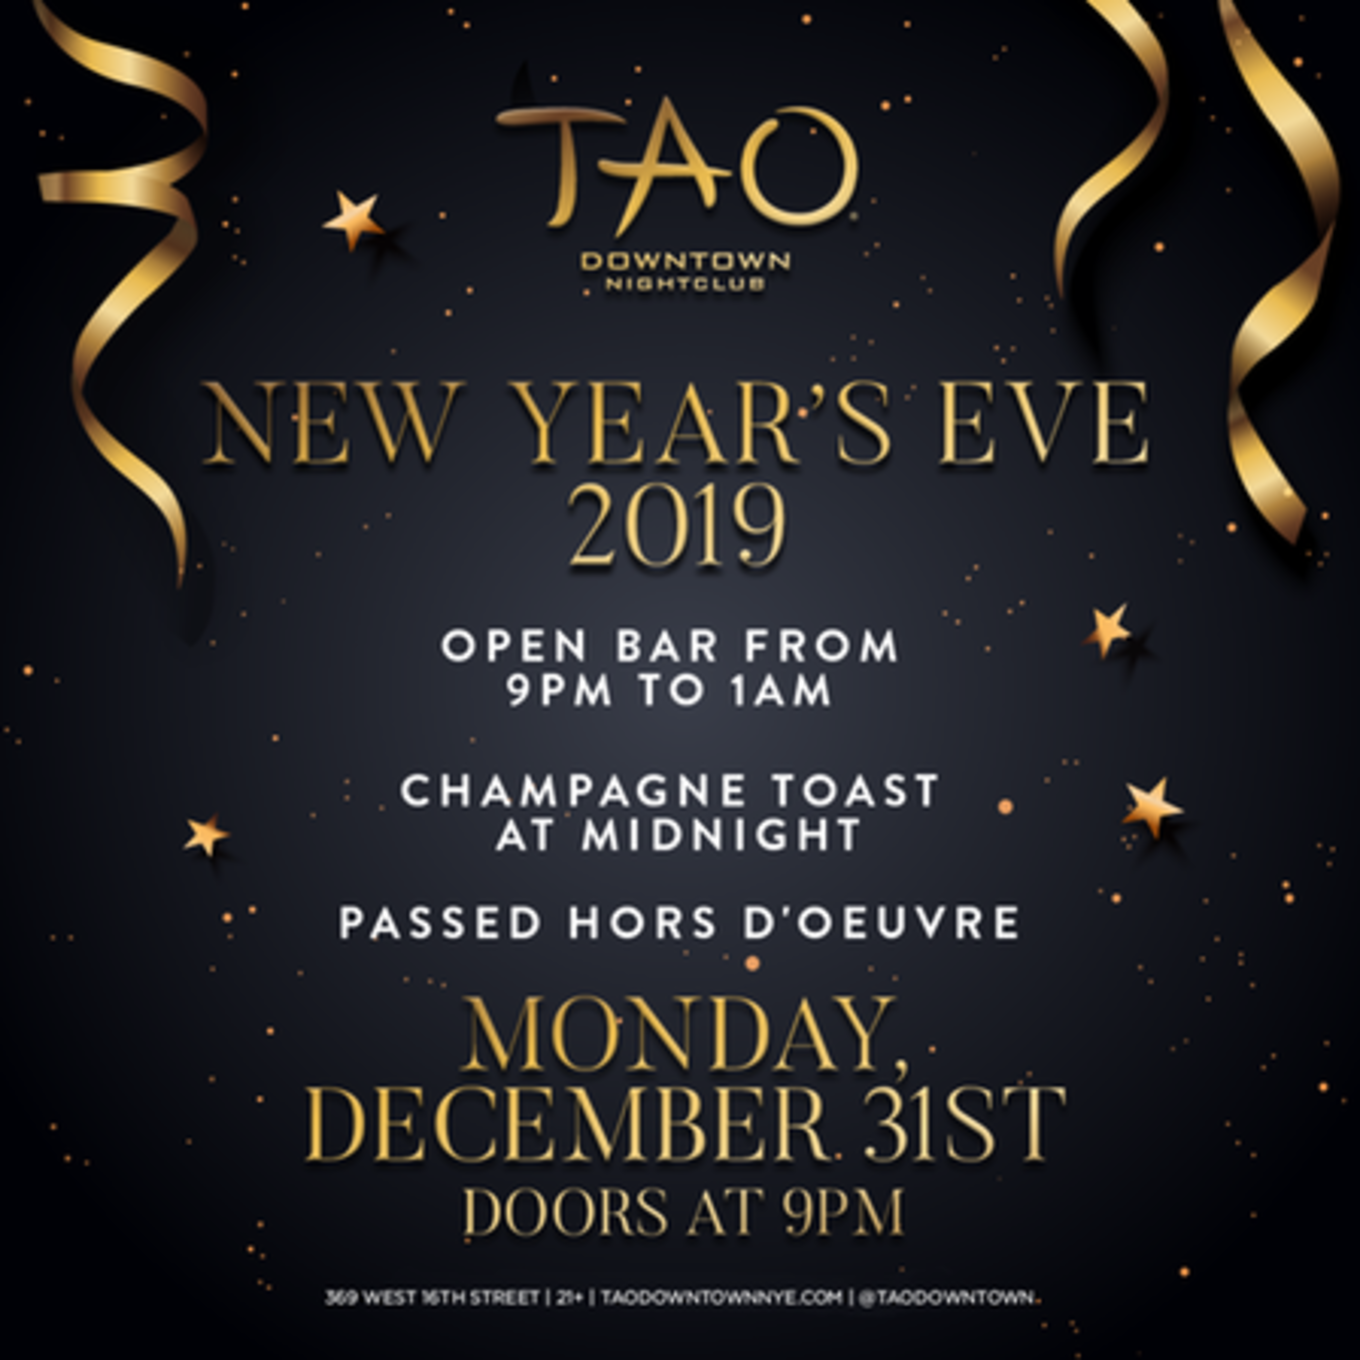 Denver New Years Fireworks6 By Niel4: New Year's Eve 2019 At TAO DOWNTOWN